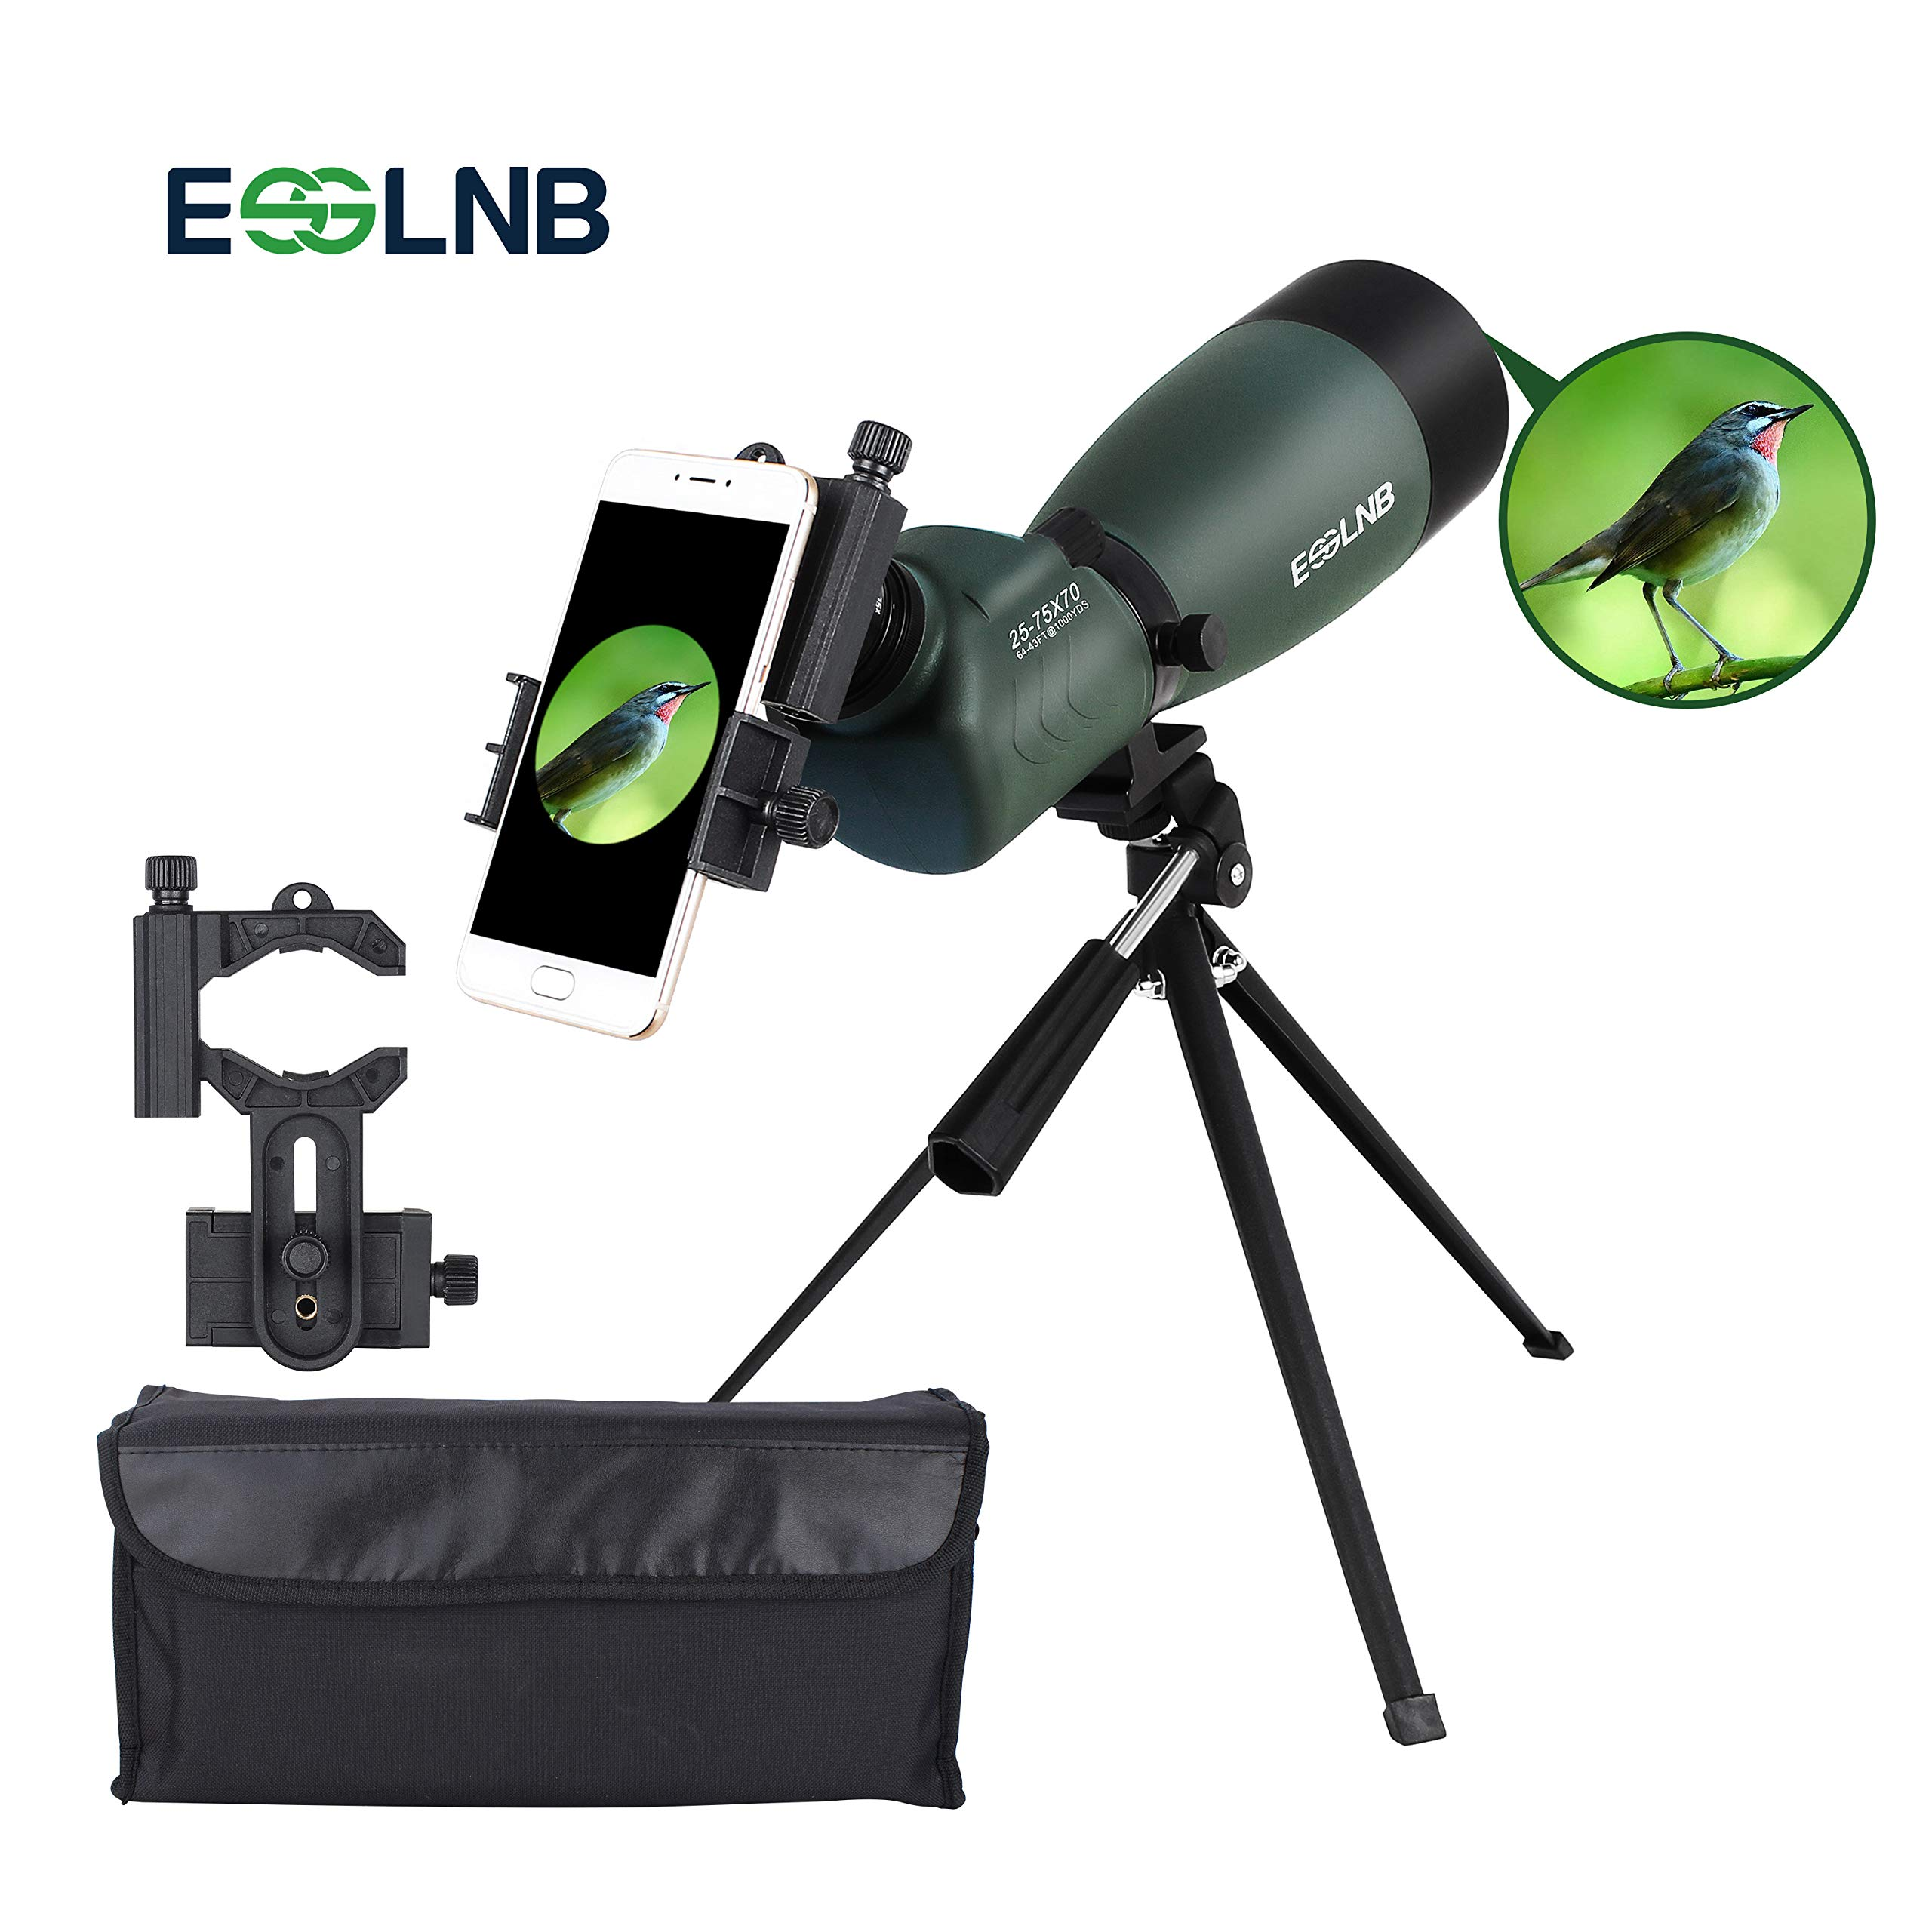 ESSLNB Spotting Scope with Tripod Phone Adapter 25-75 X 70 BAK4 Monocular Telescope 45 Degree Angled Waterproof Compact Spotting Scopes for Target Shooting Hunting Bird Watching by ESSLNB